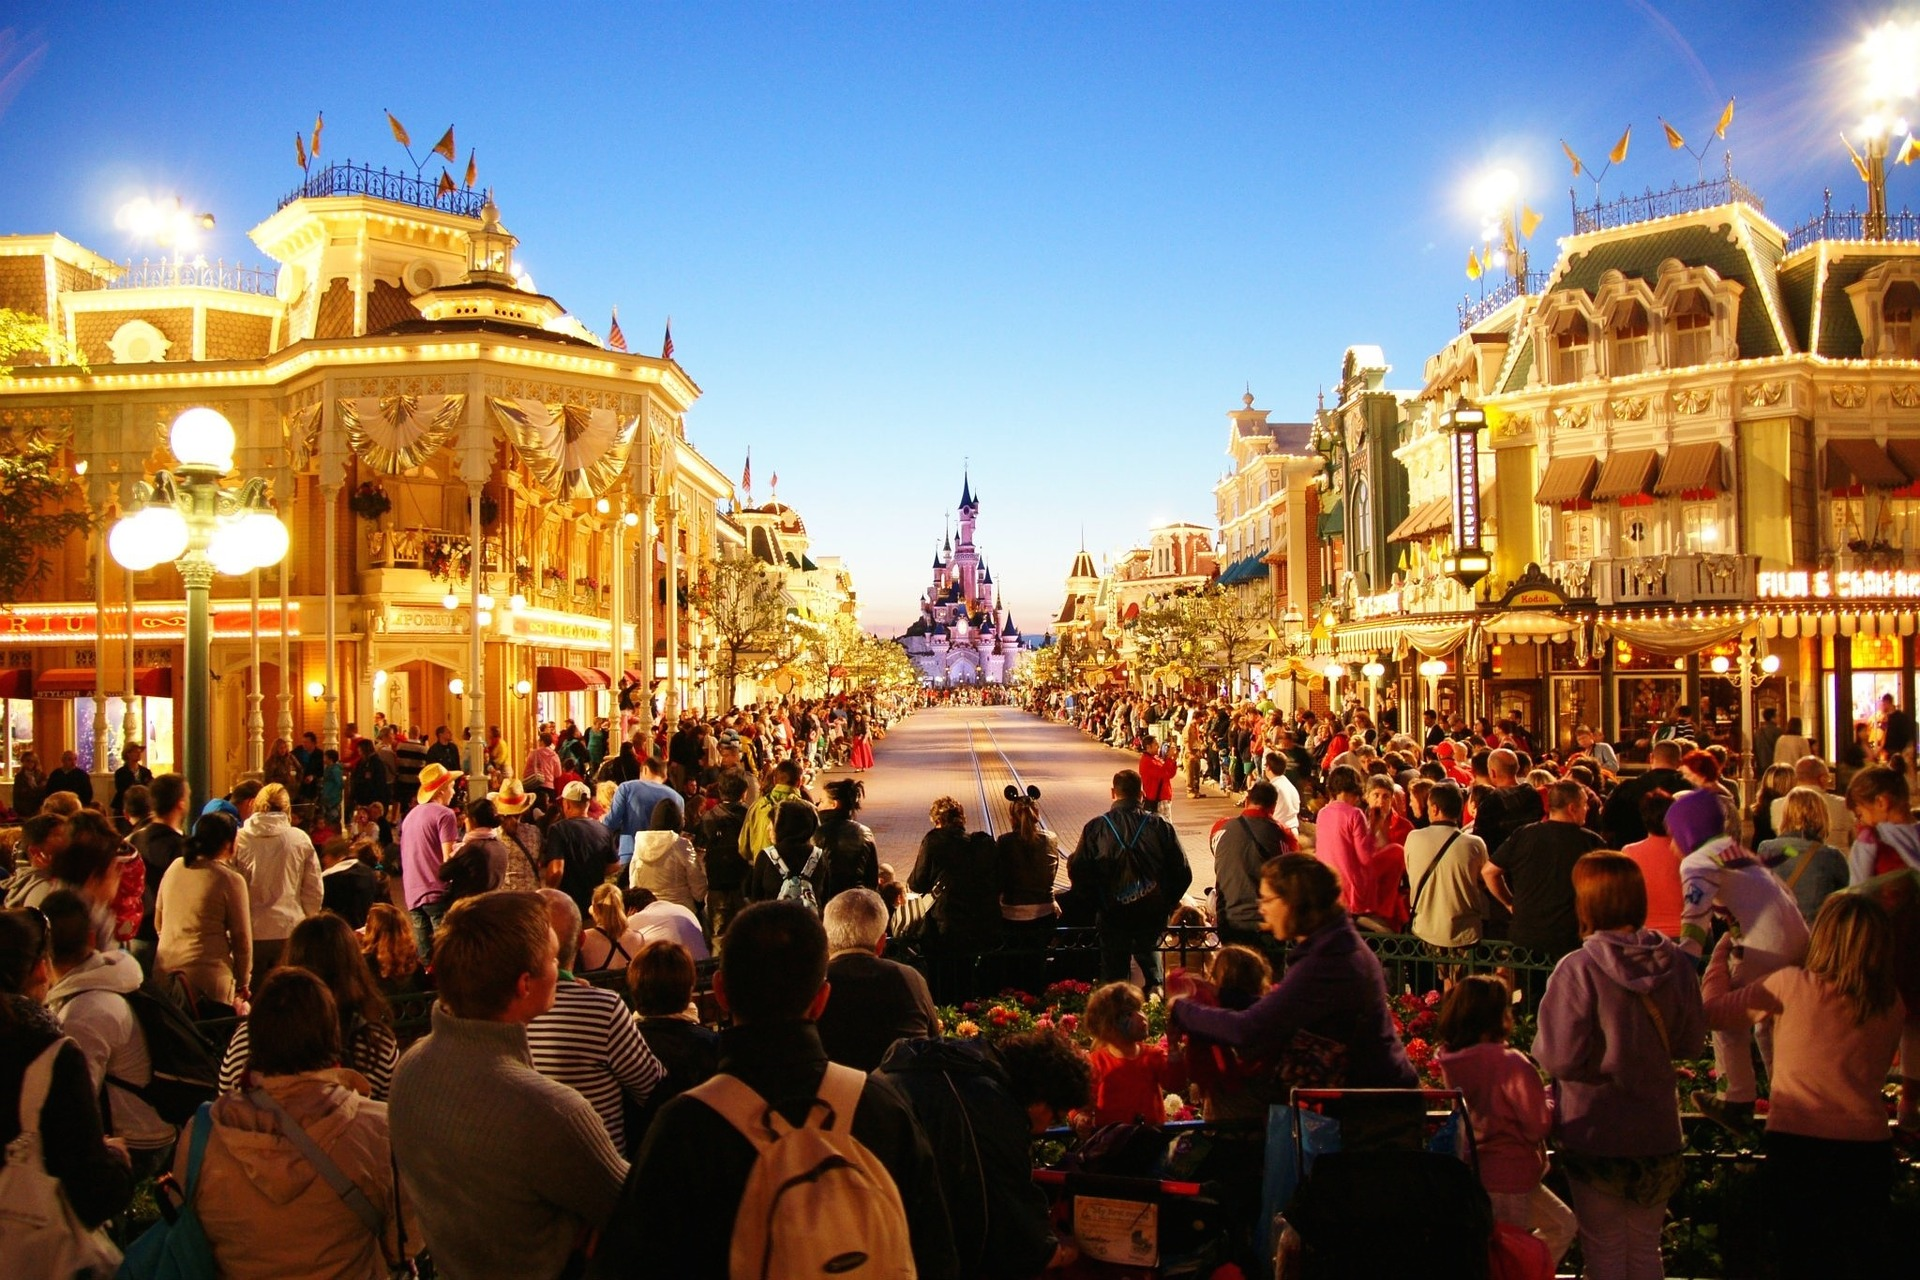 Disney World Staff And Guests Share Their 'Behind The Magic' Stories